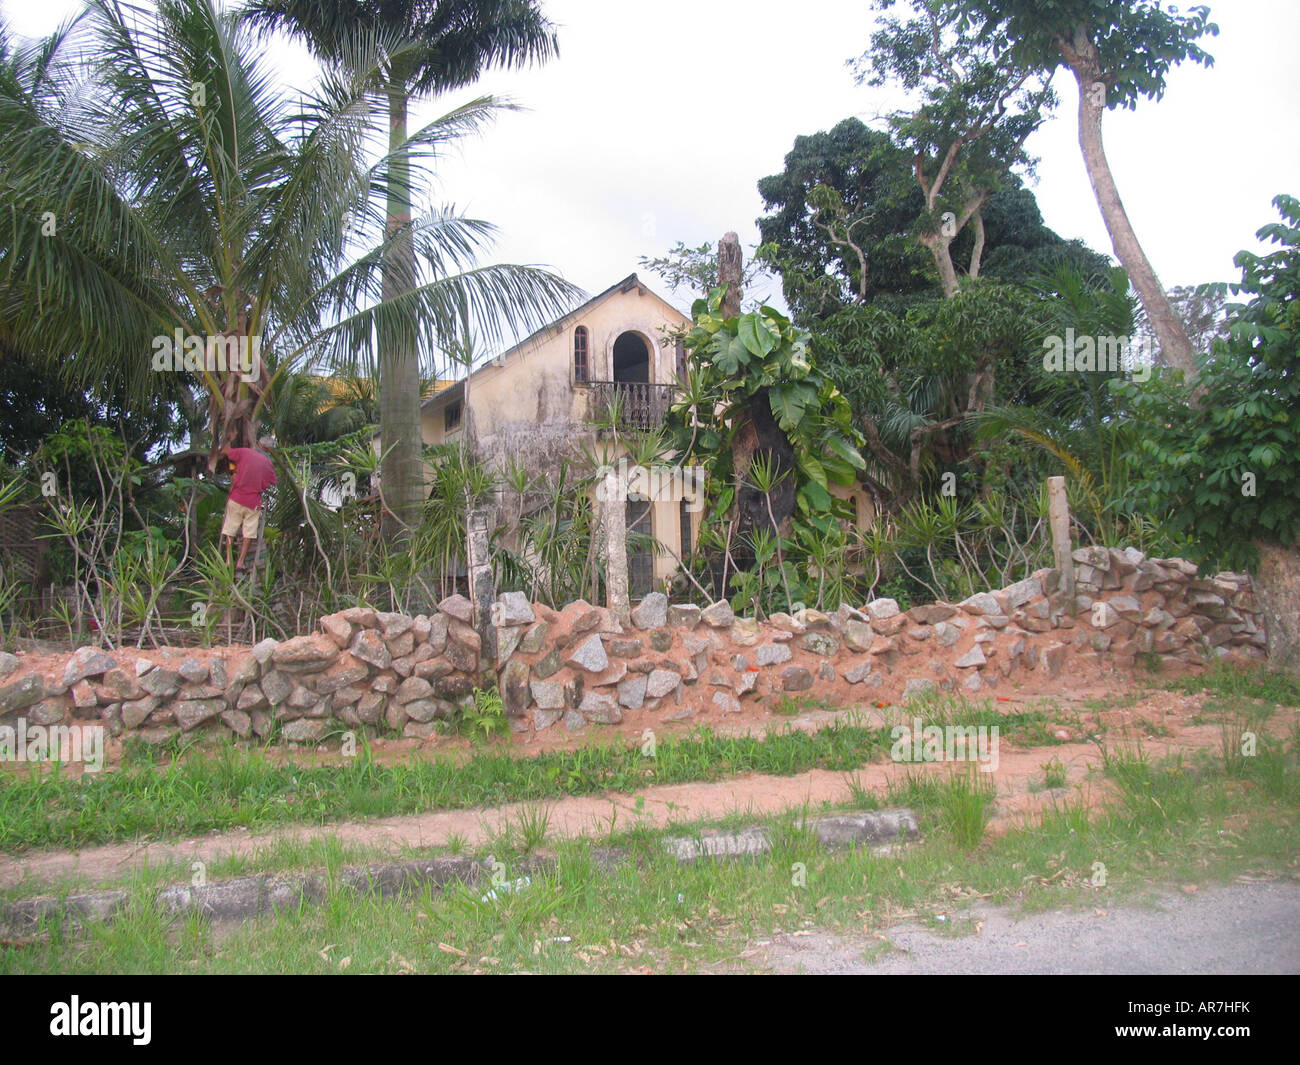 man gathering coconuts near the famous and ghosty haunted house of